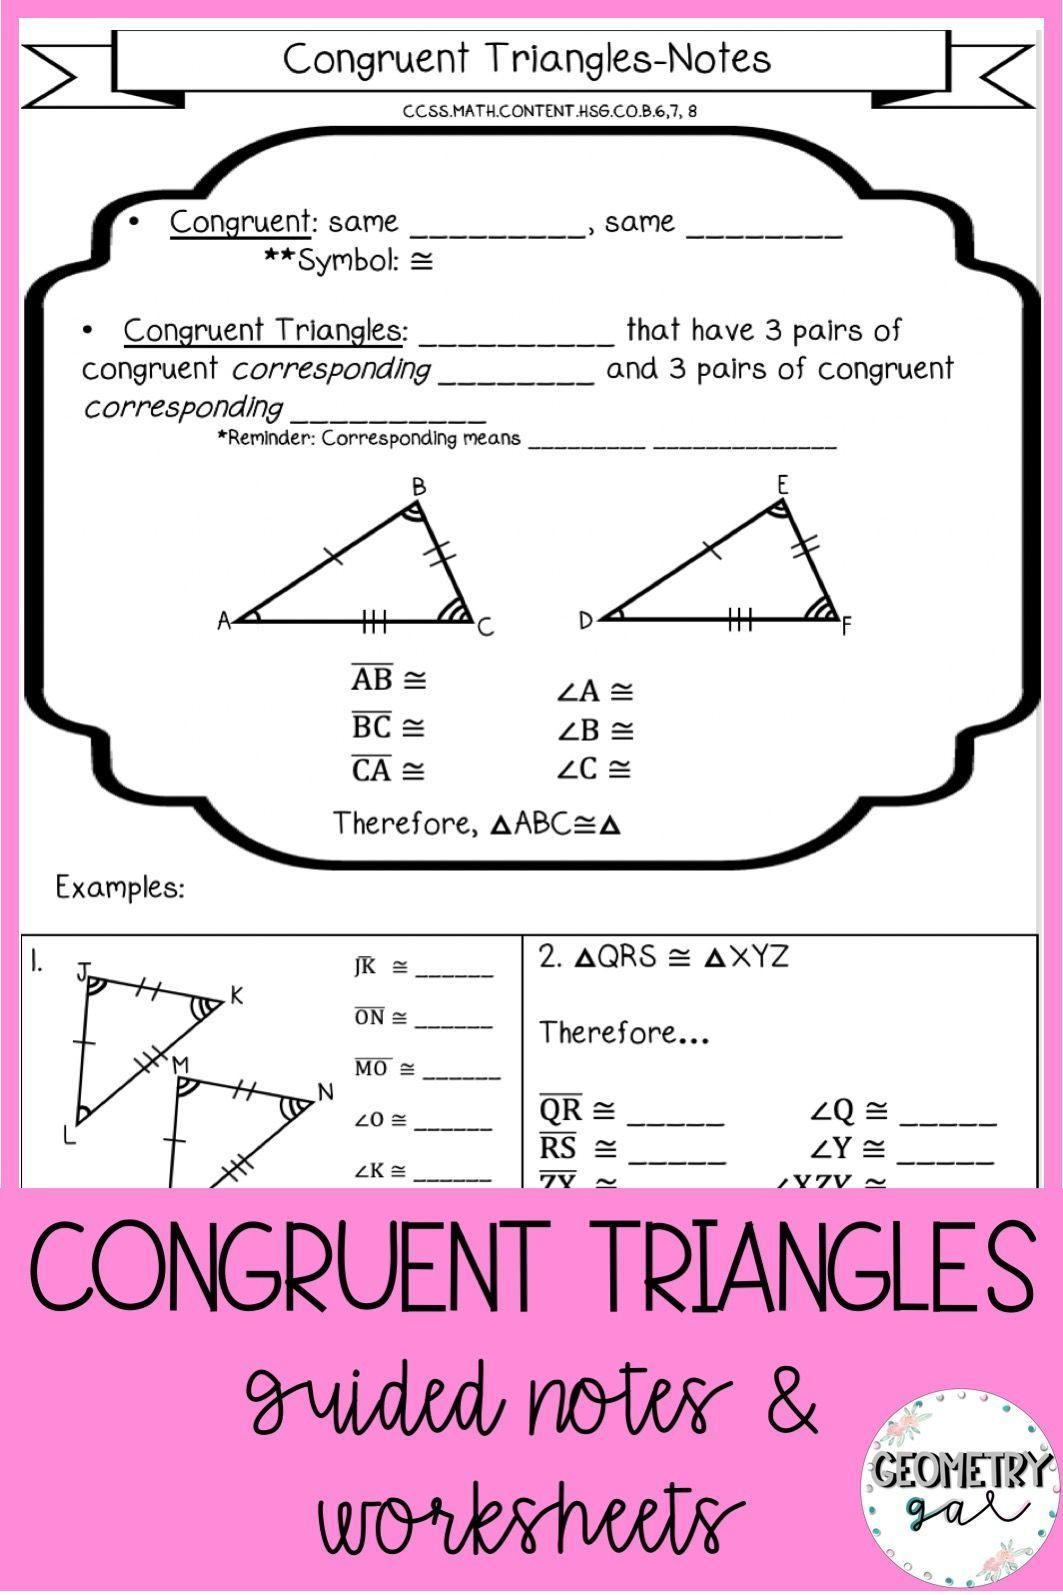 Congruent Triangles Worksheet with Answers Congruent Triangles Notes and Worksheets